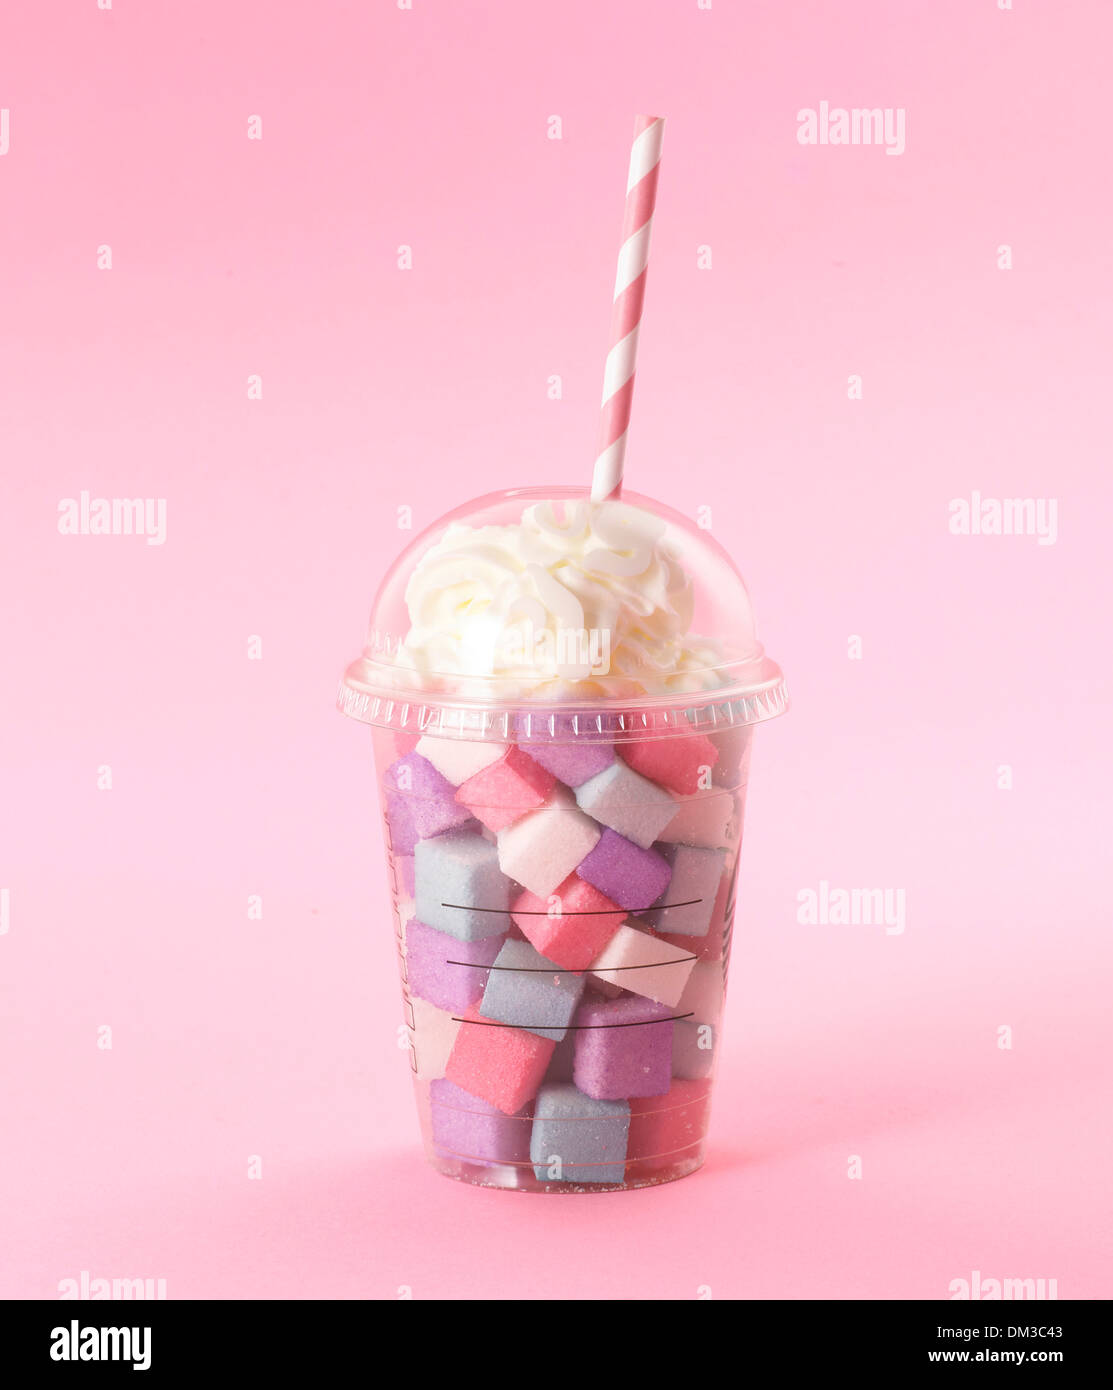 Multi coloured sugar milkshake style with straw cut out on pink background - Stock Image